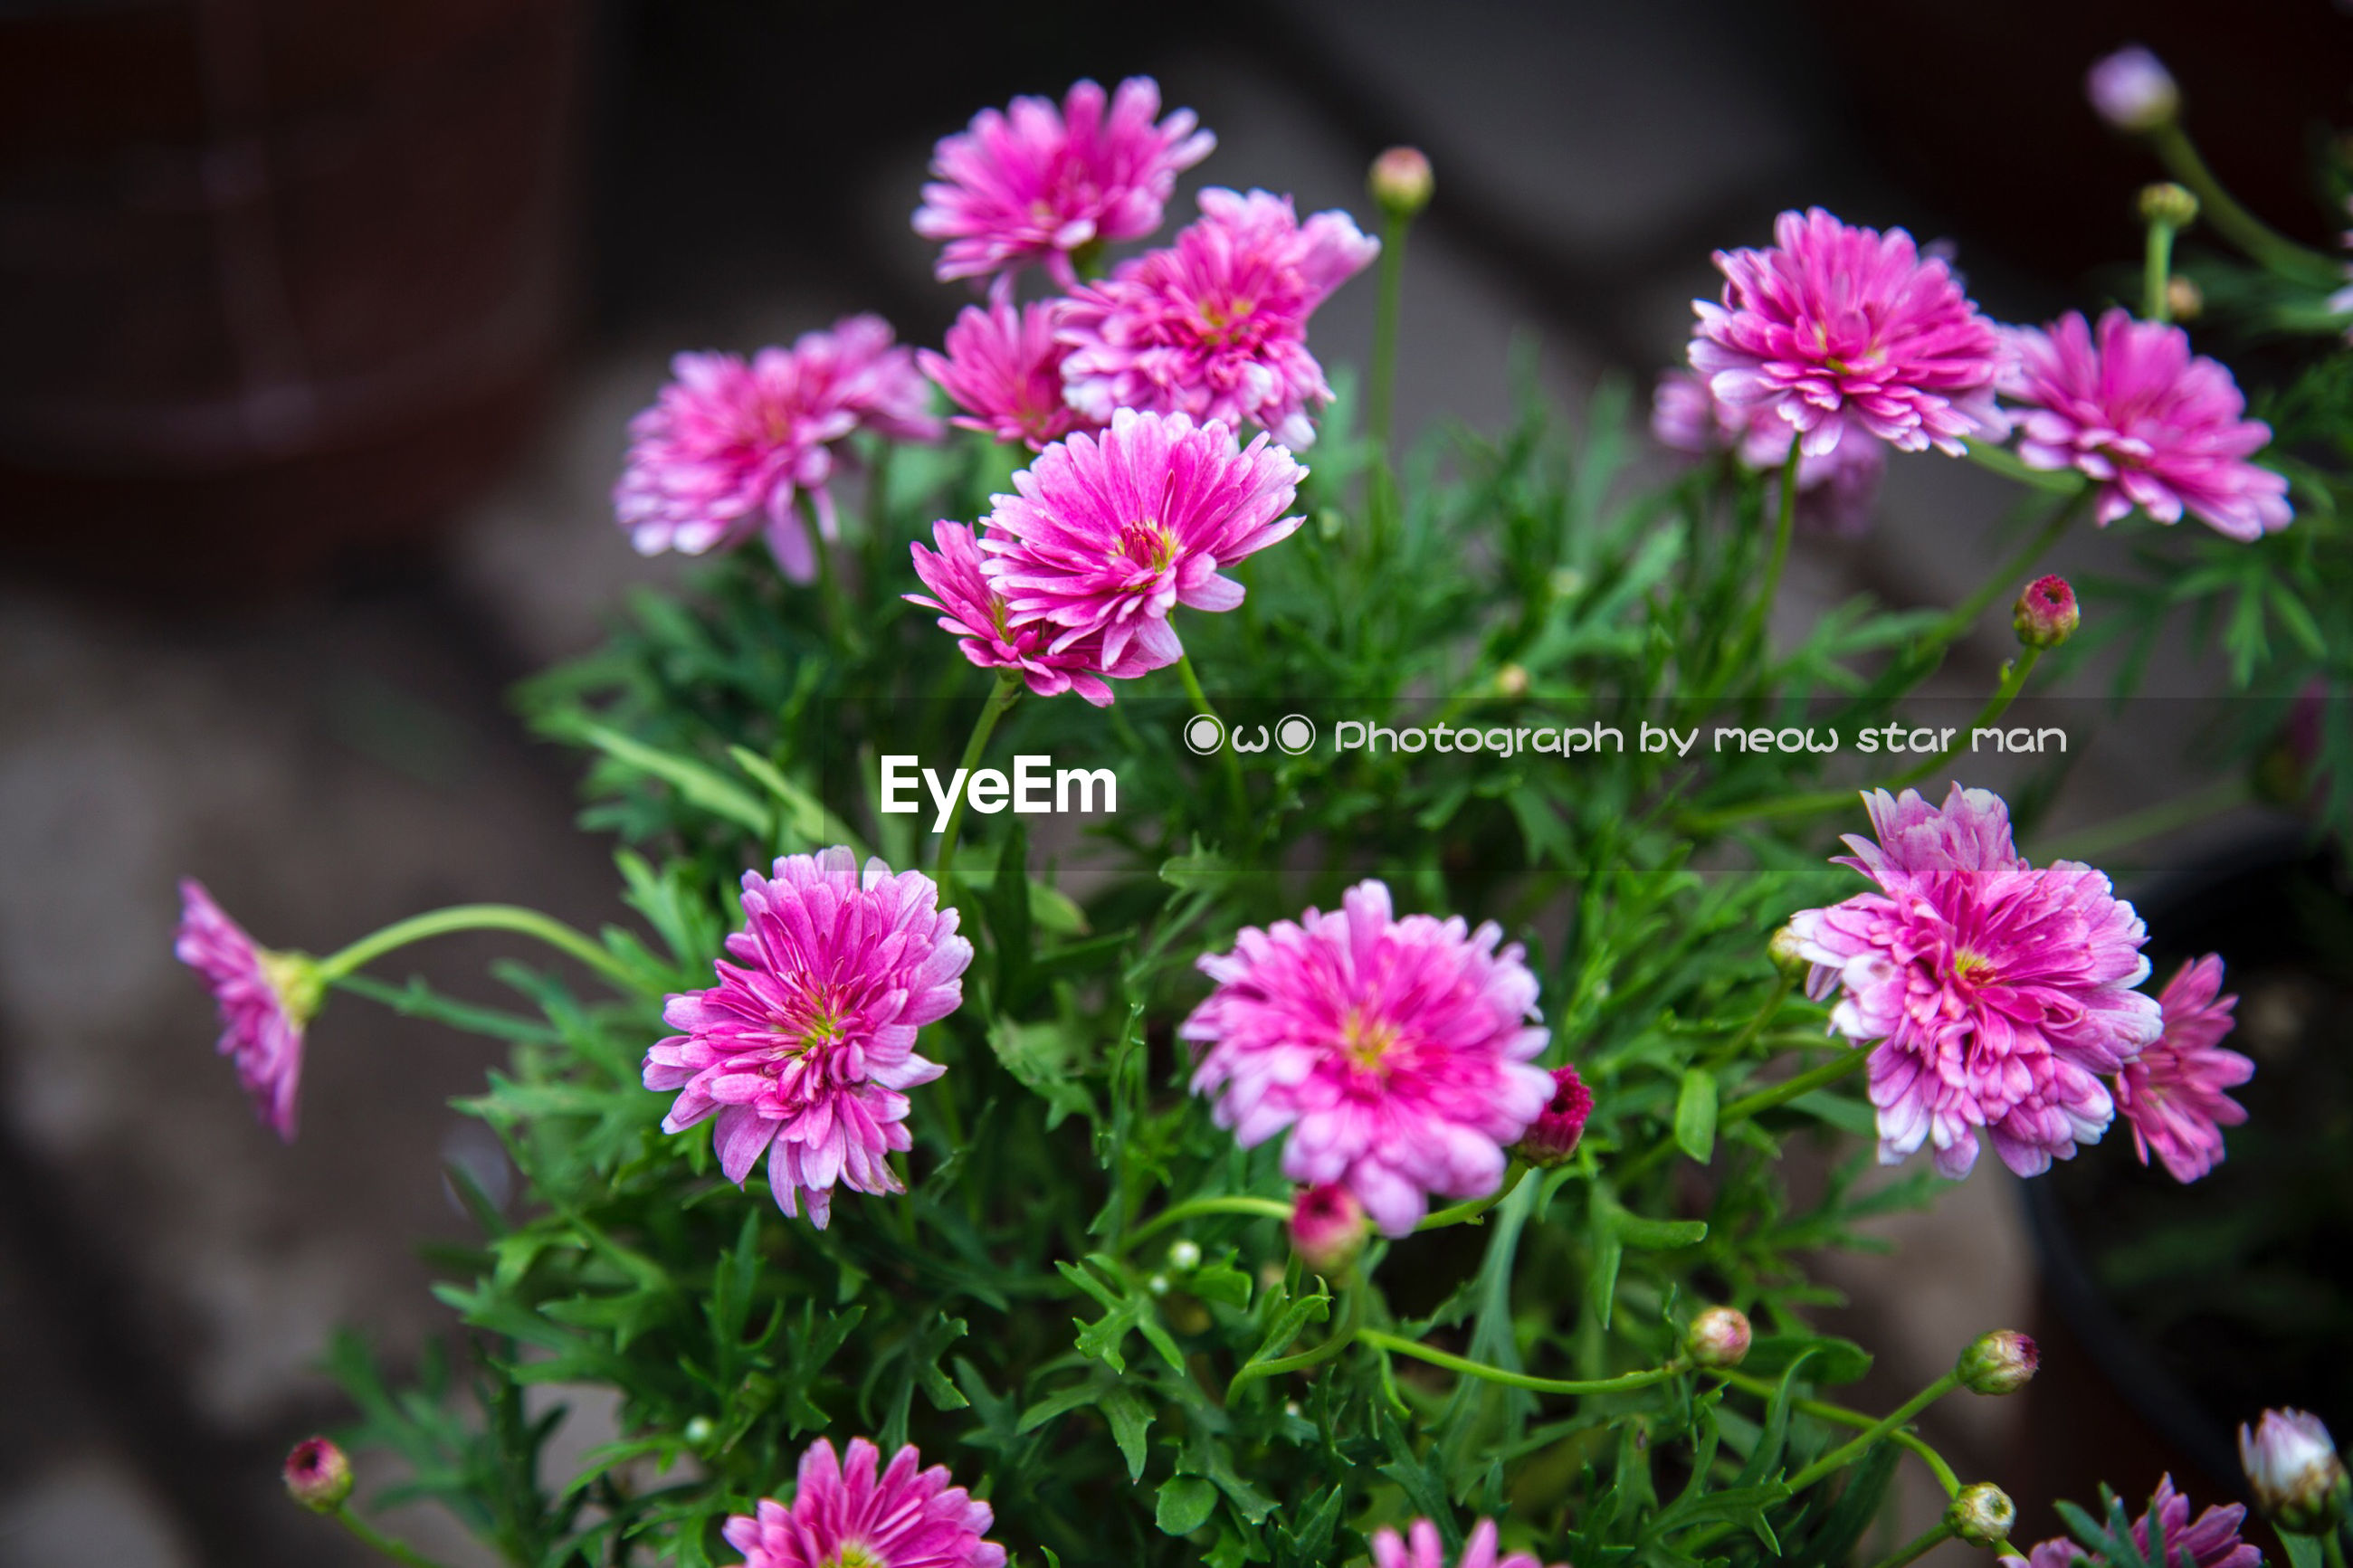 flower, freshness, pink color, fragility, petal, growth, beauty in nature, focus on foreground, flower head, close-up, nature, blooming, pink, plant, in bloom, selective focus, stem, outdoors, blossom, day